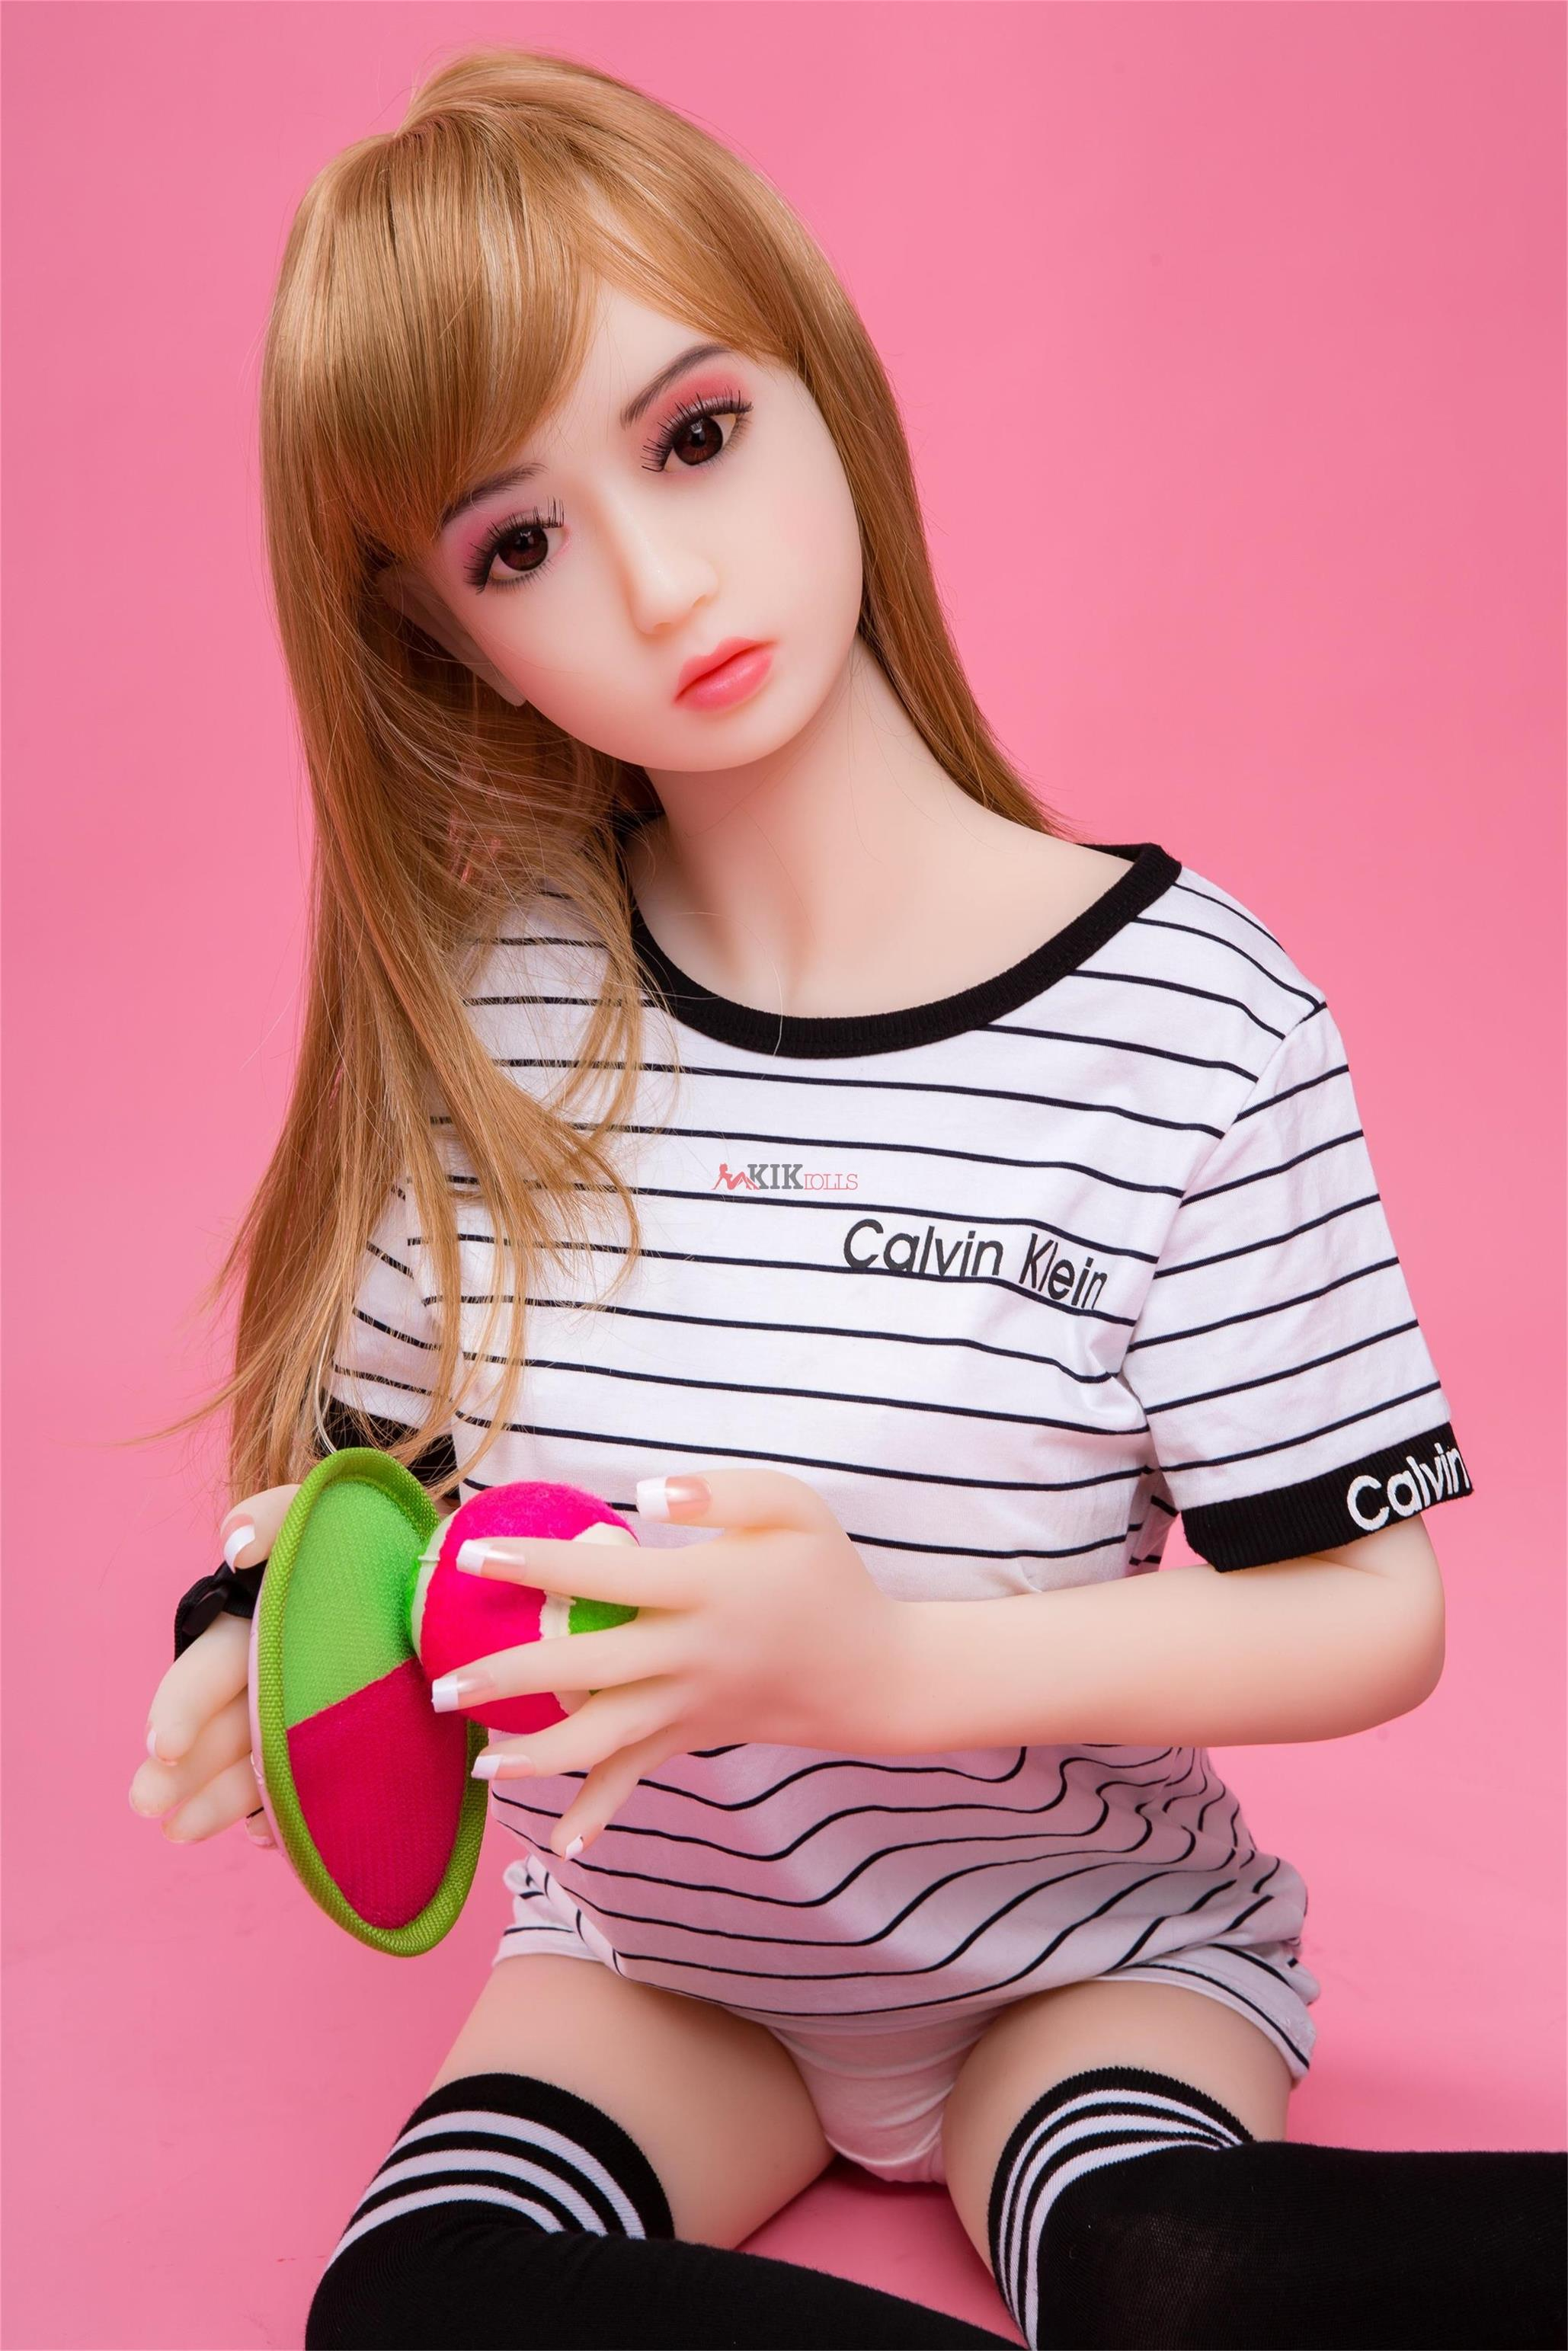 125cm lifelike silicone sex doll for sale Amy